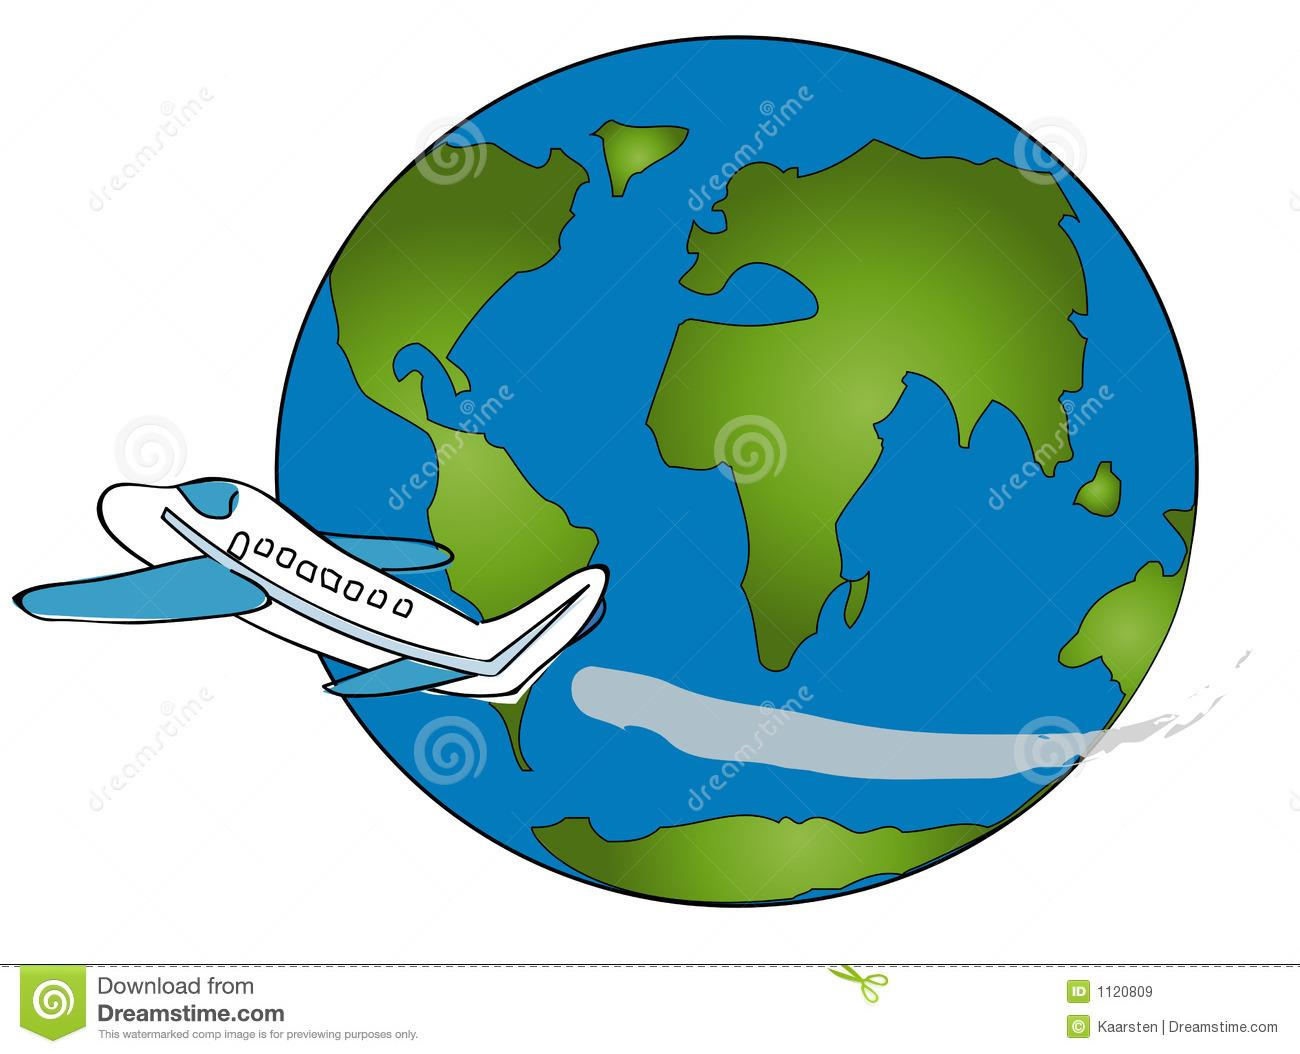 Travel around the world clipart clipart panda free for Art from around the world